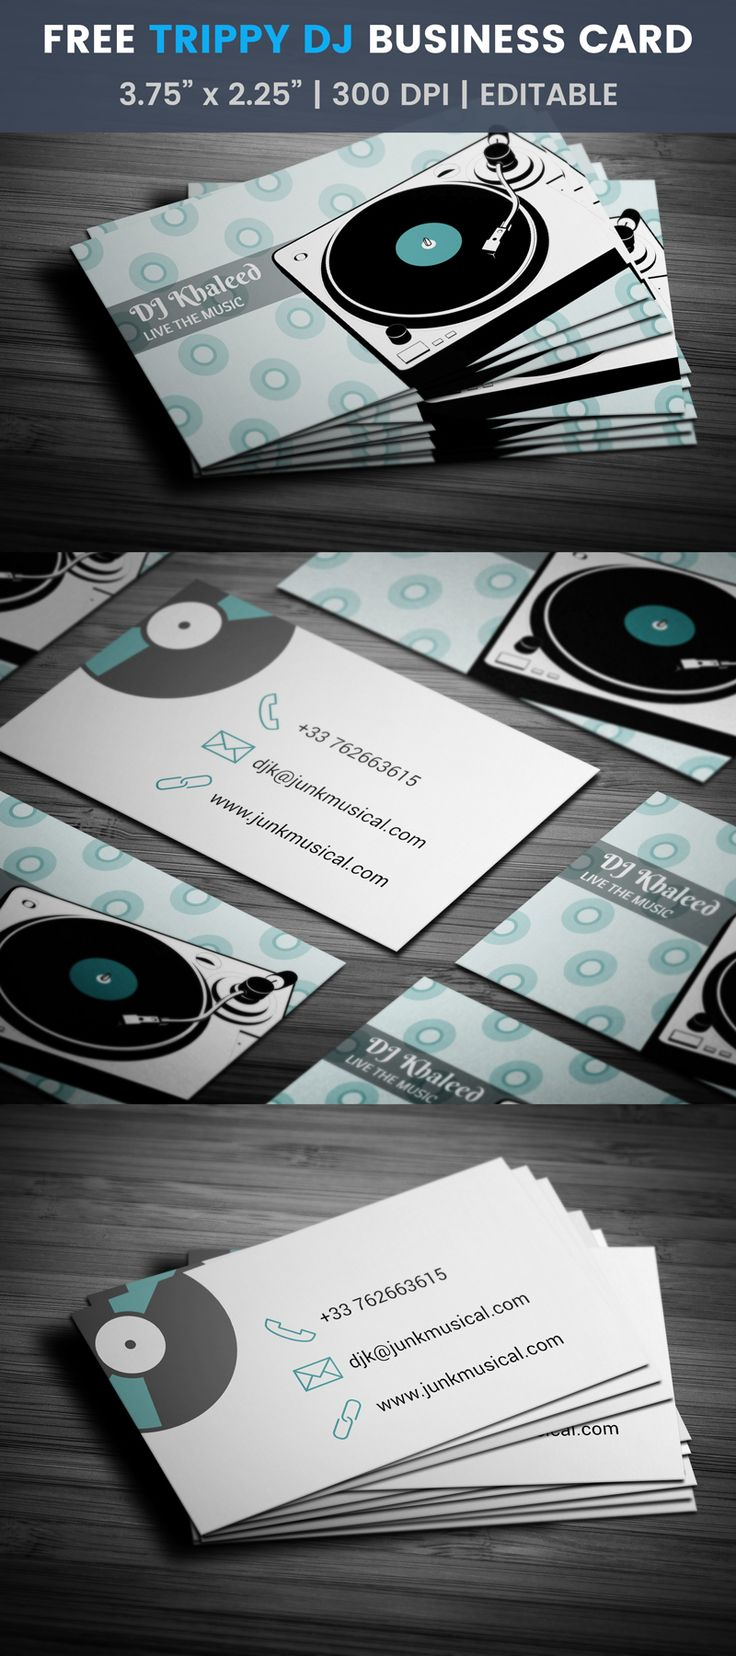 13 best free dj business cards images on pinterest free turntable business card reheart Image collections